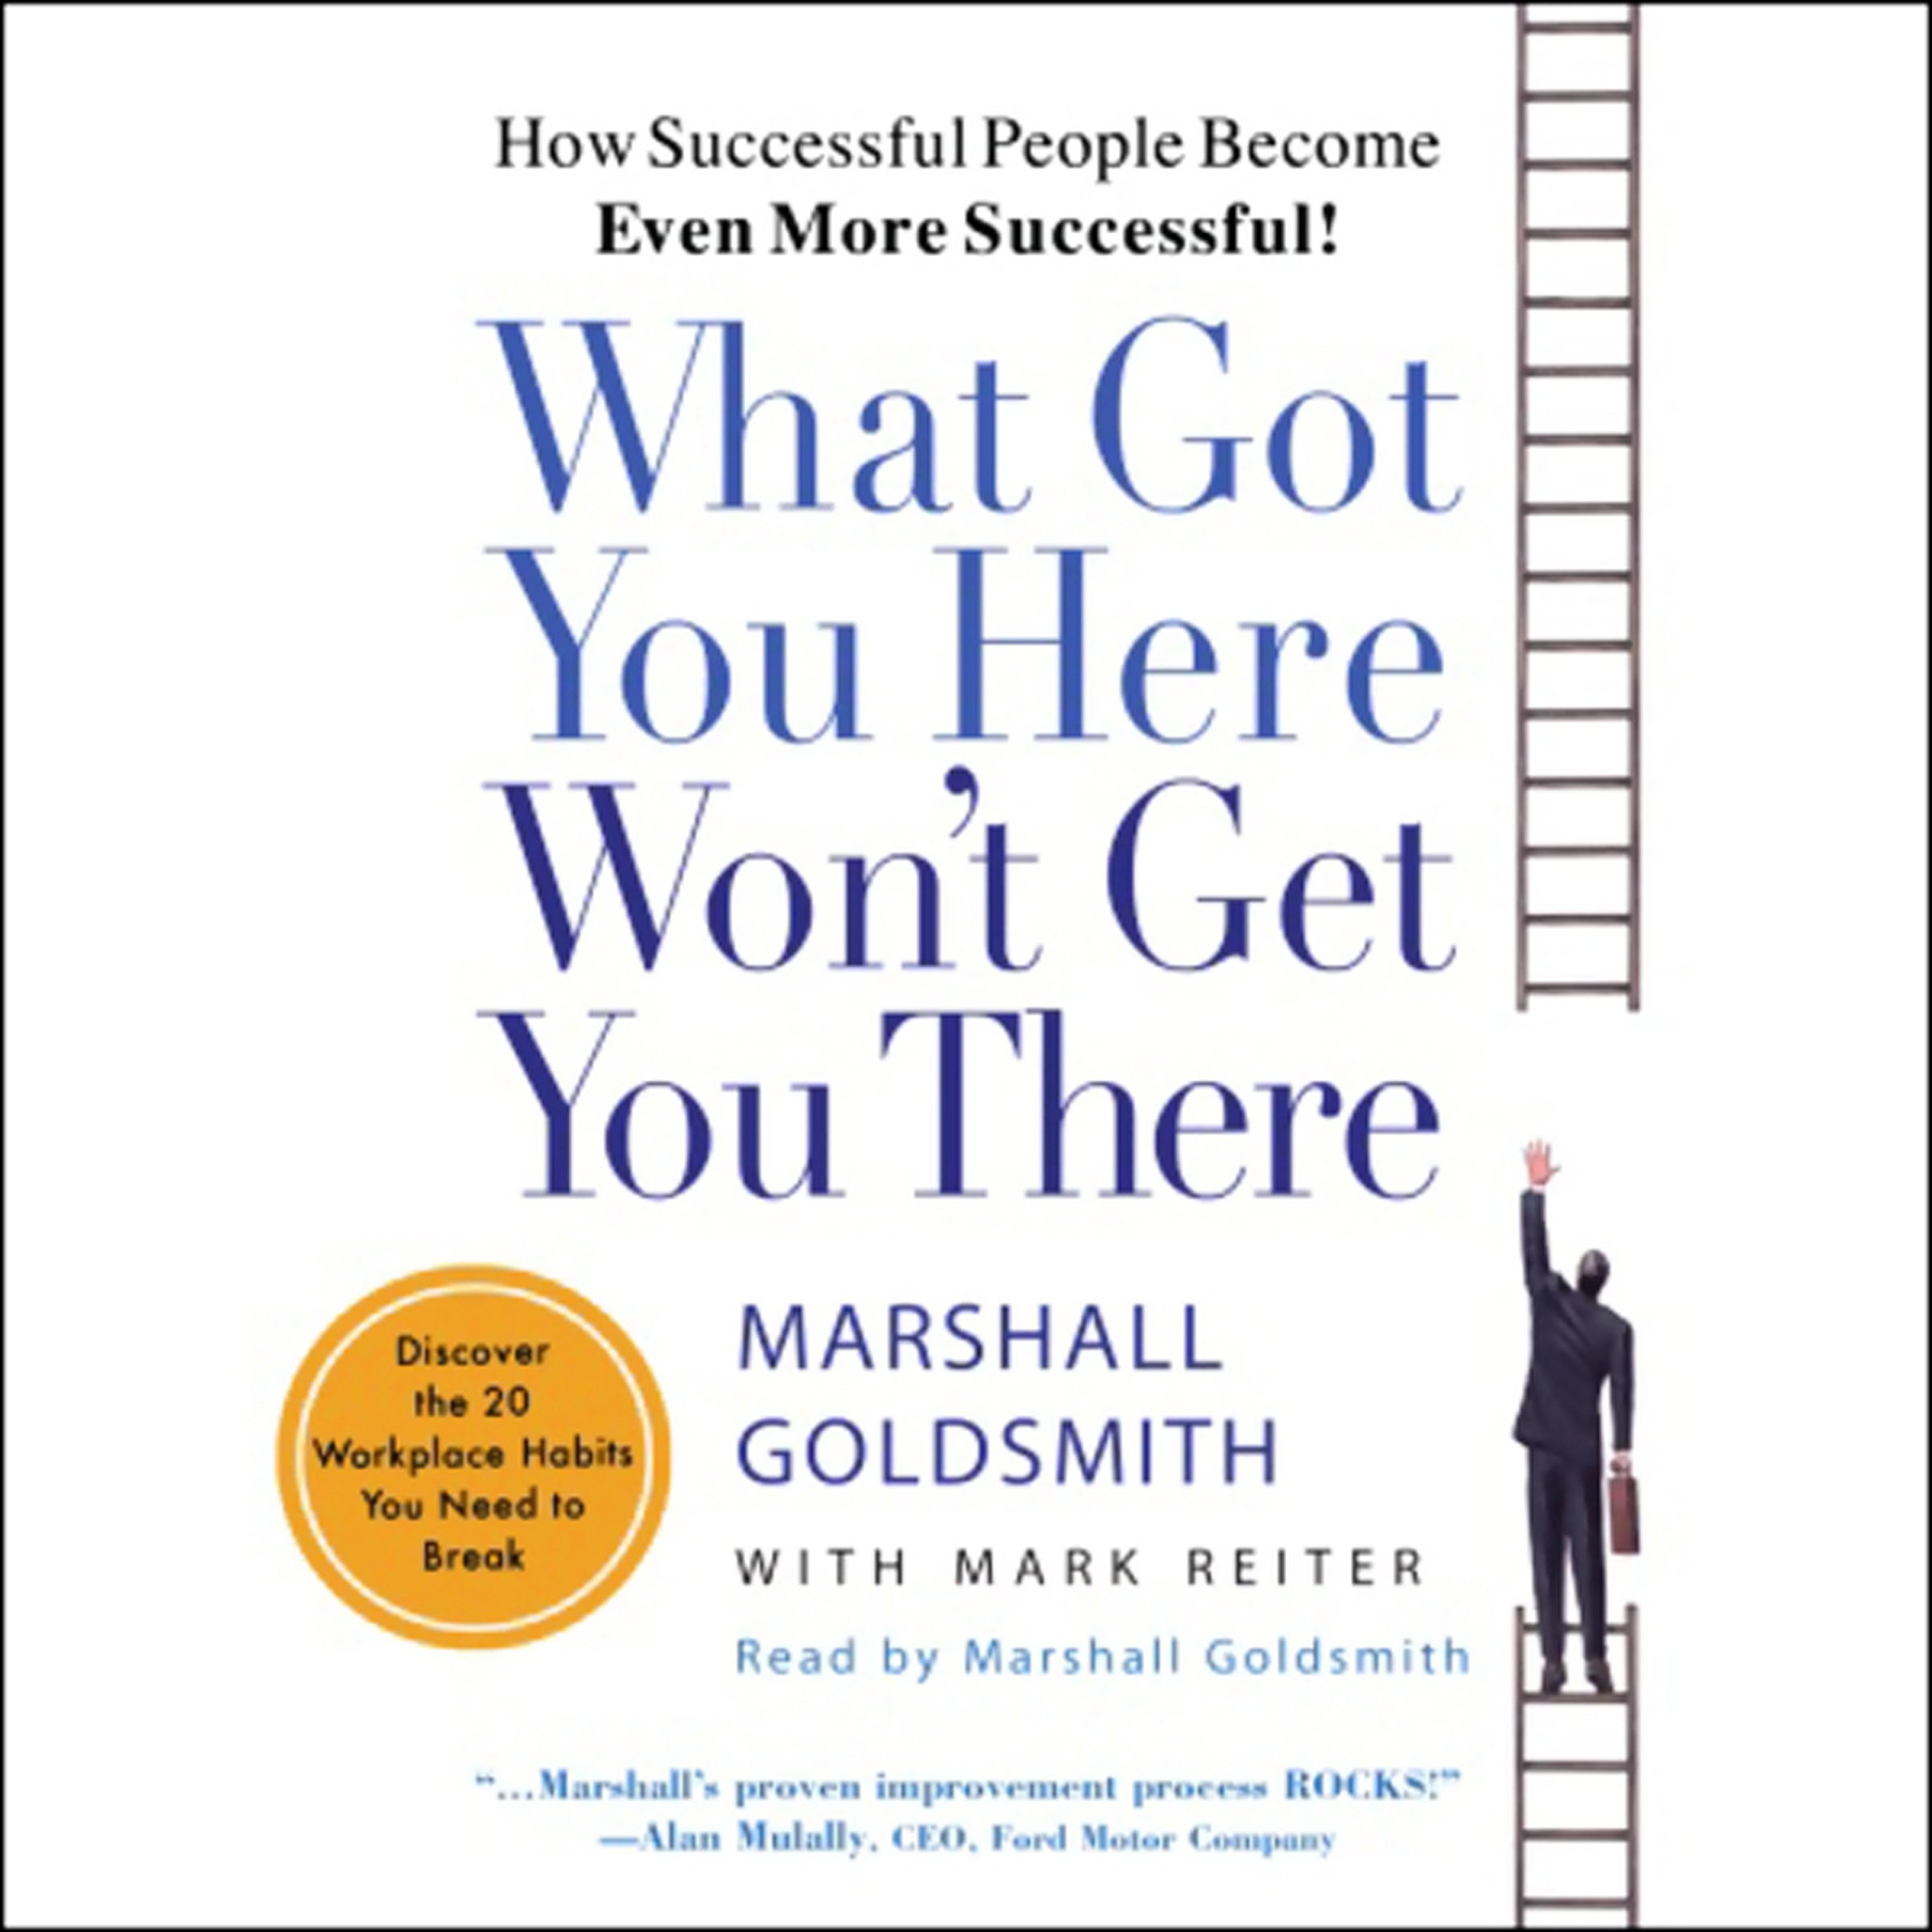 What Got You Here Won't Get You There: How Successful People Become Even More Successful!